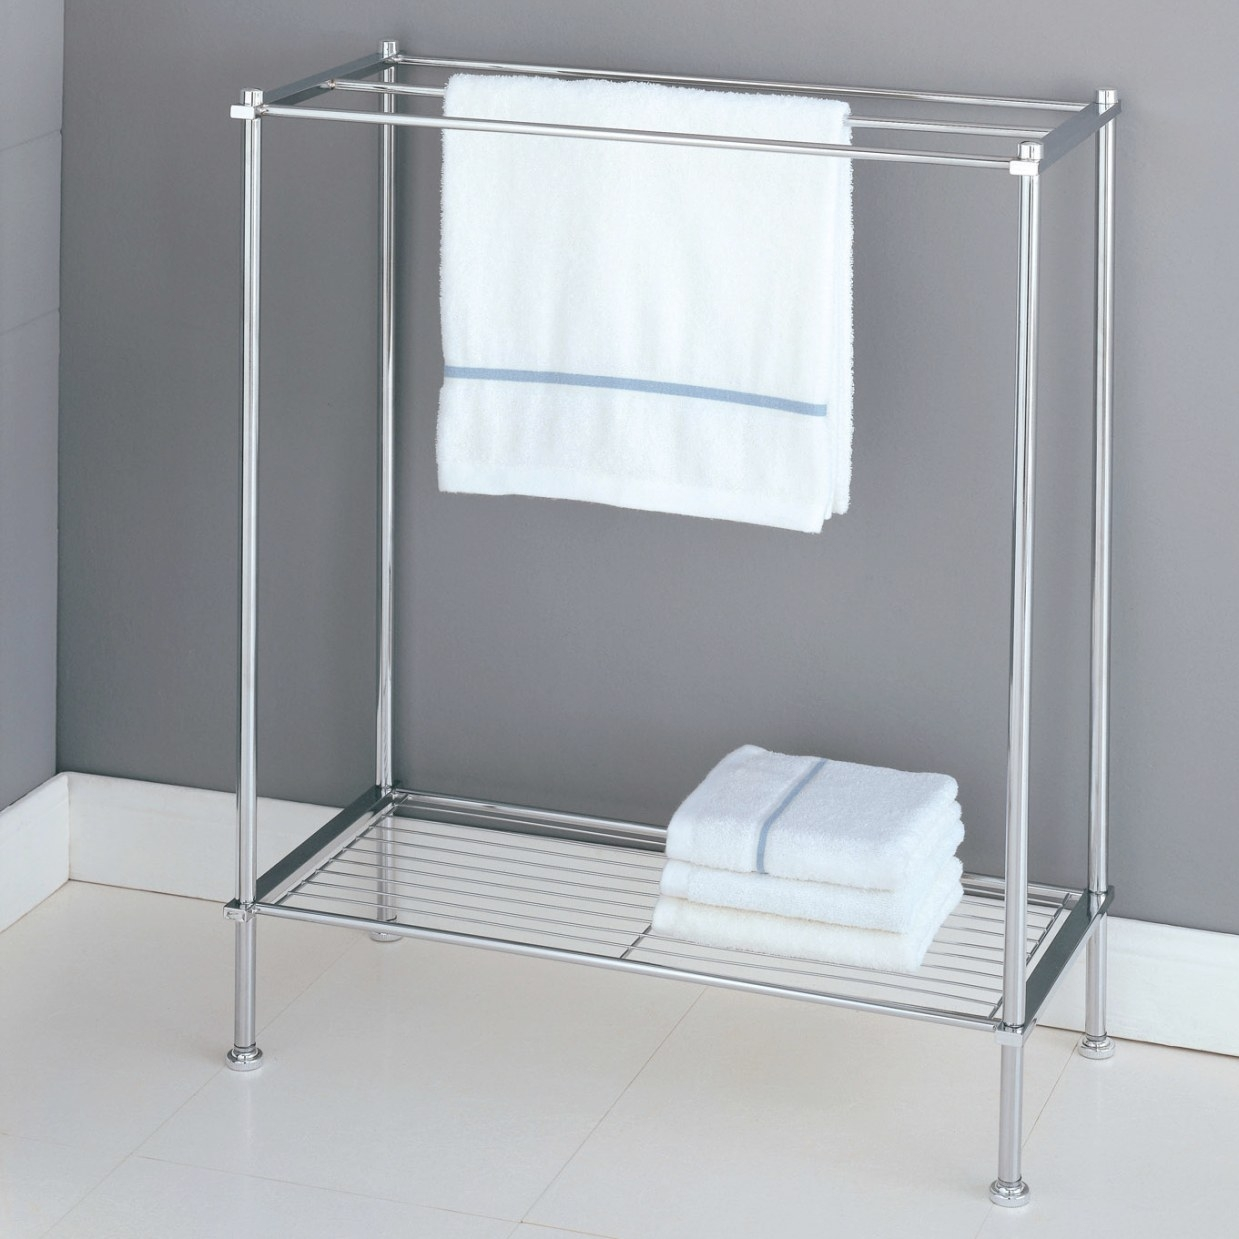 Stylish Free Standing Towel Racks For Outstanding Bathroom in Towel Racks For Small Bathrooms